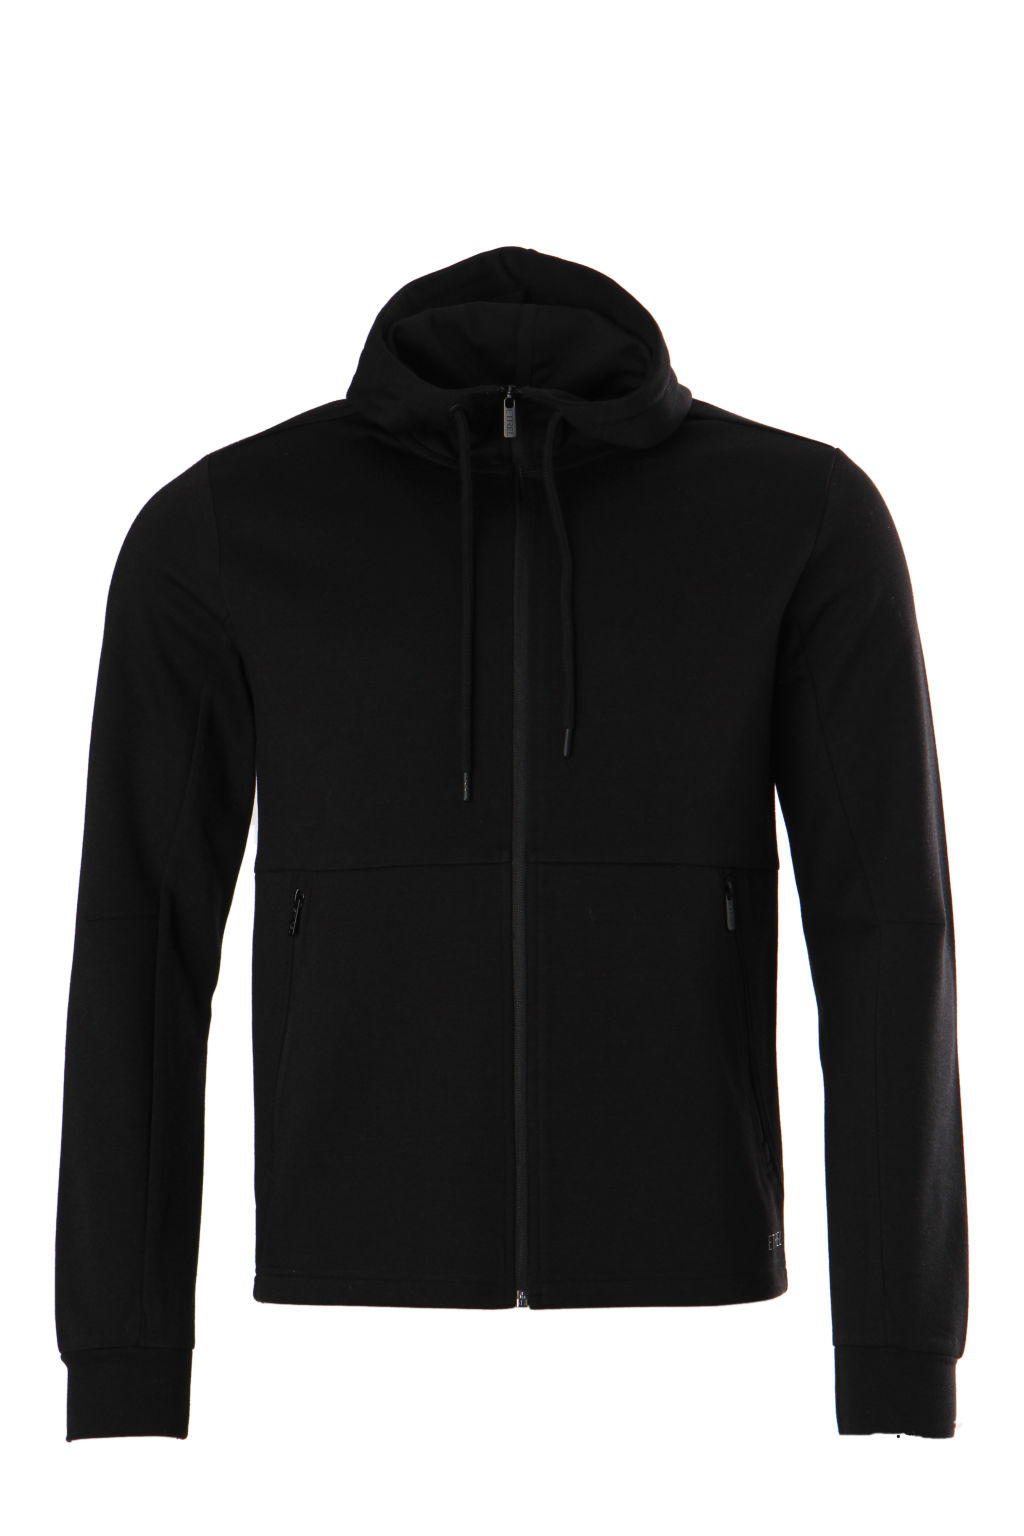 Etirel Jacob Hoody M